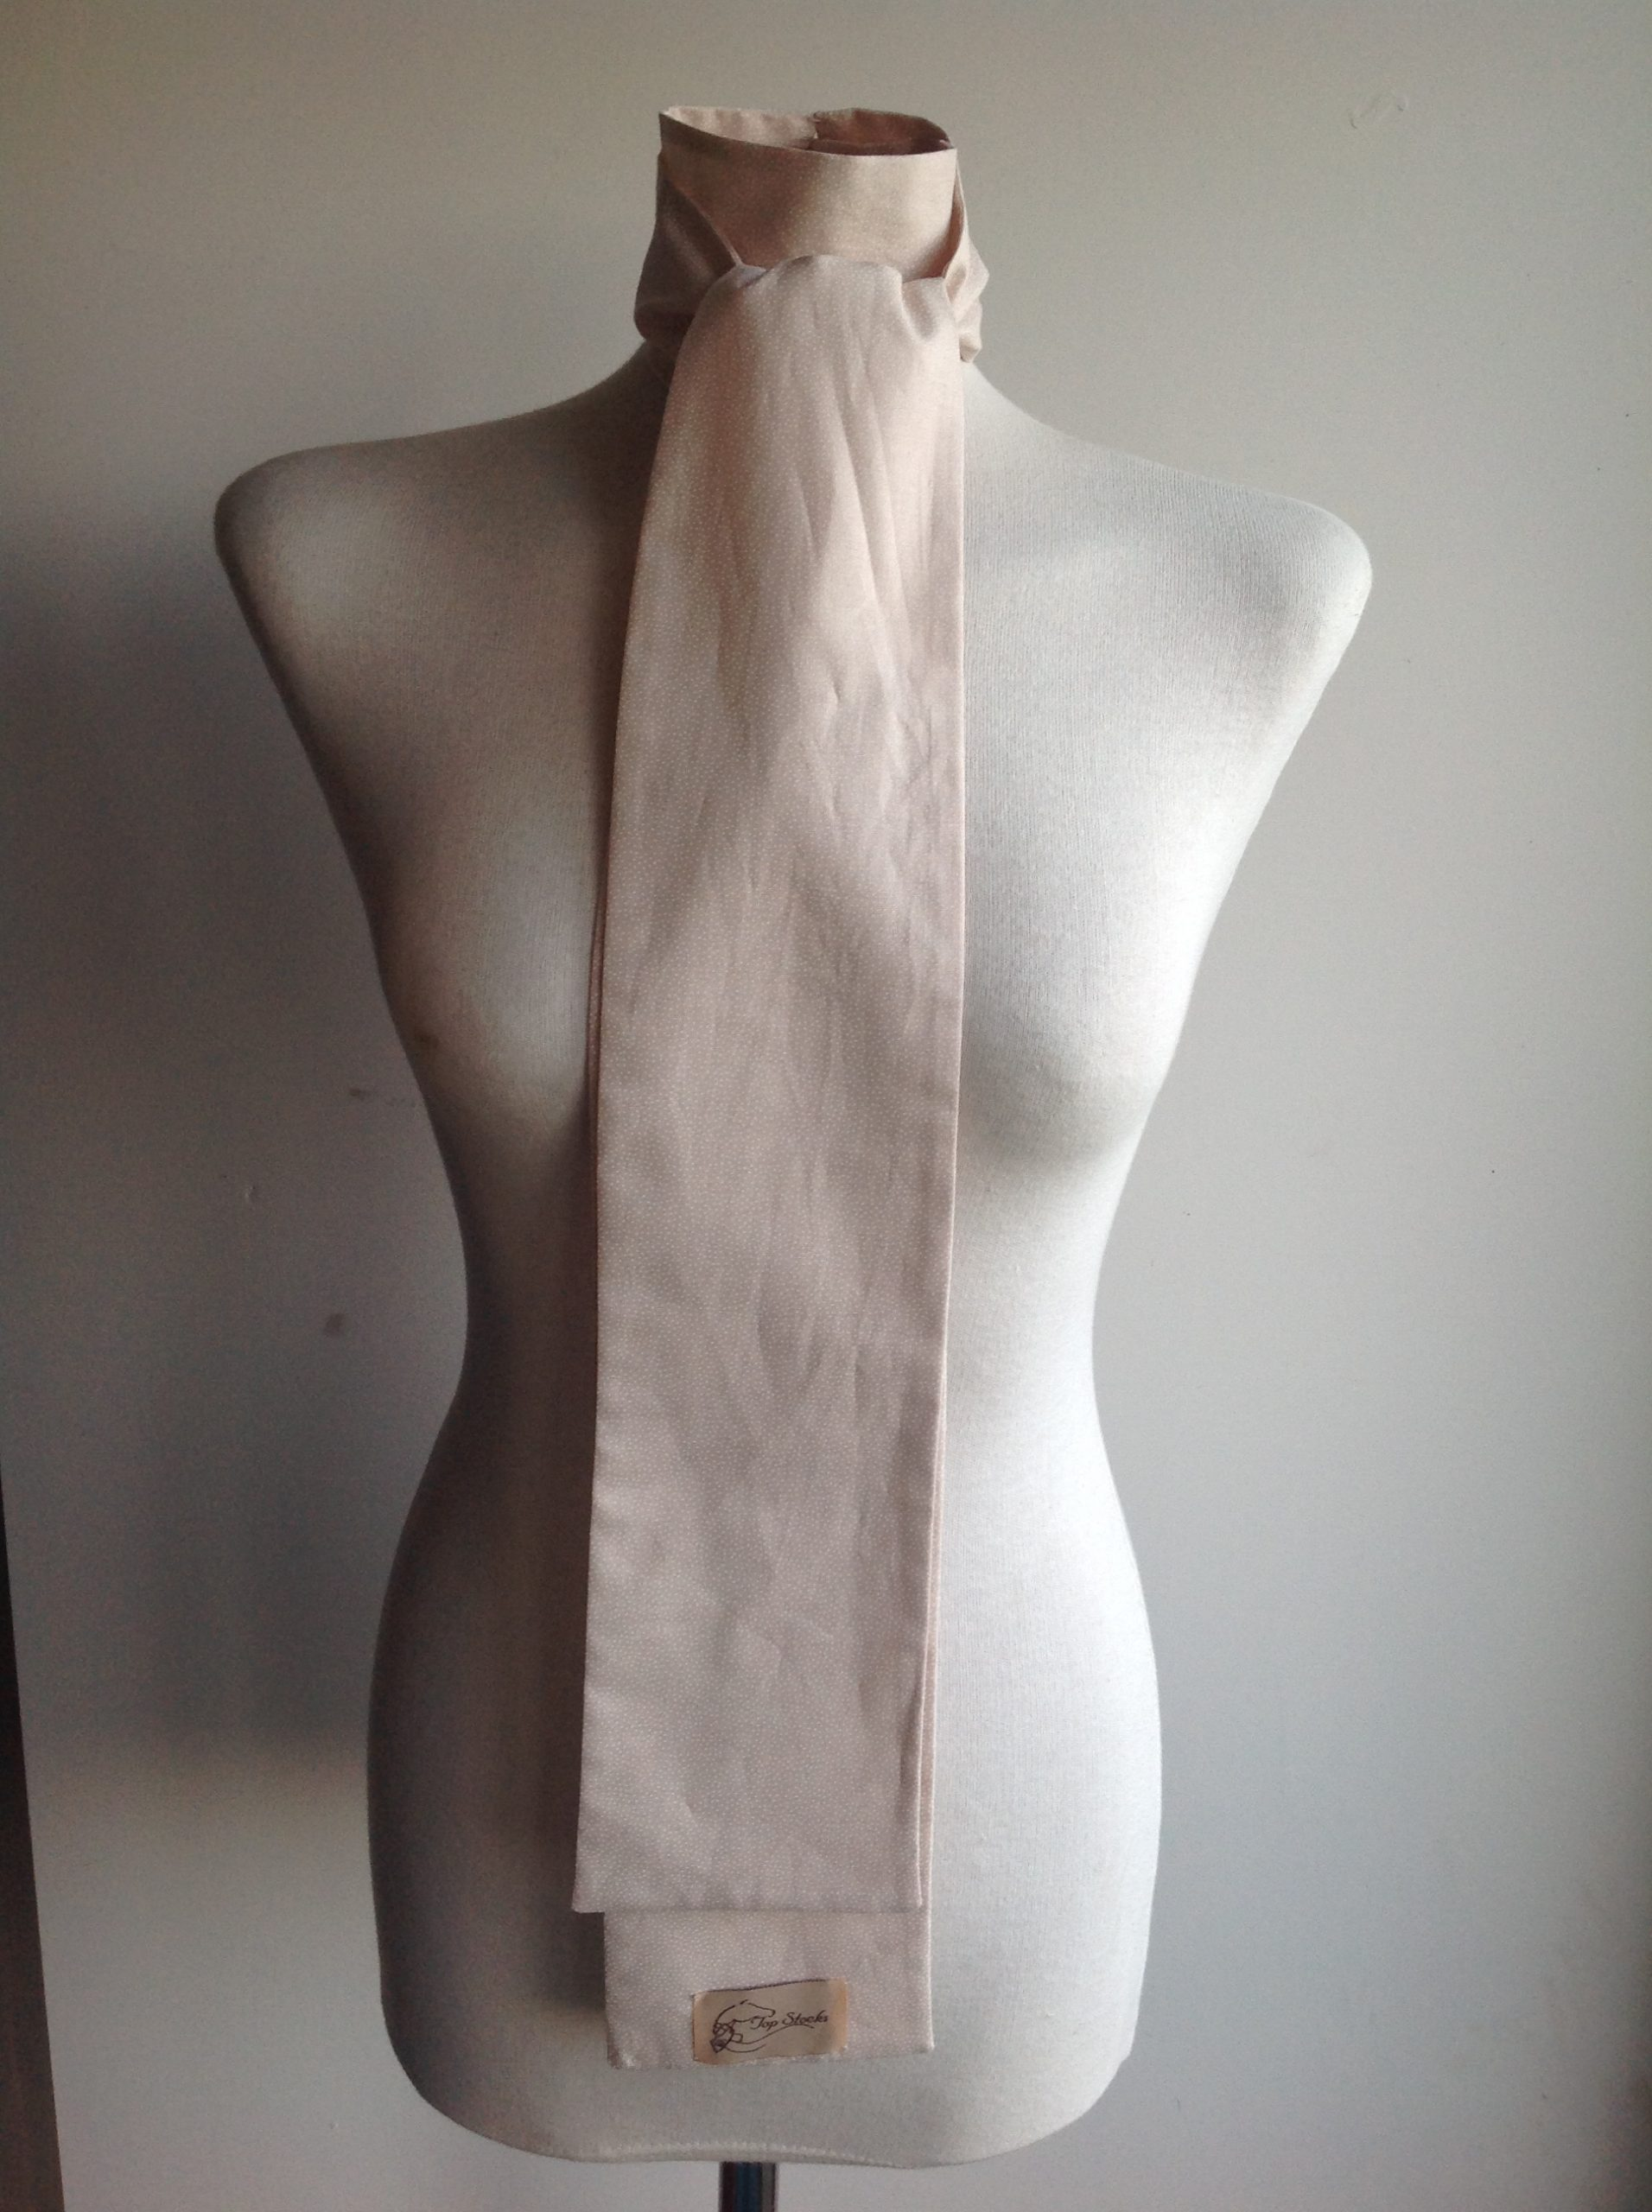 Shaped to tie 100% cotton stock - blush pink with white mini random polka dots